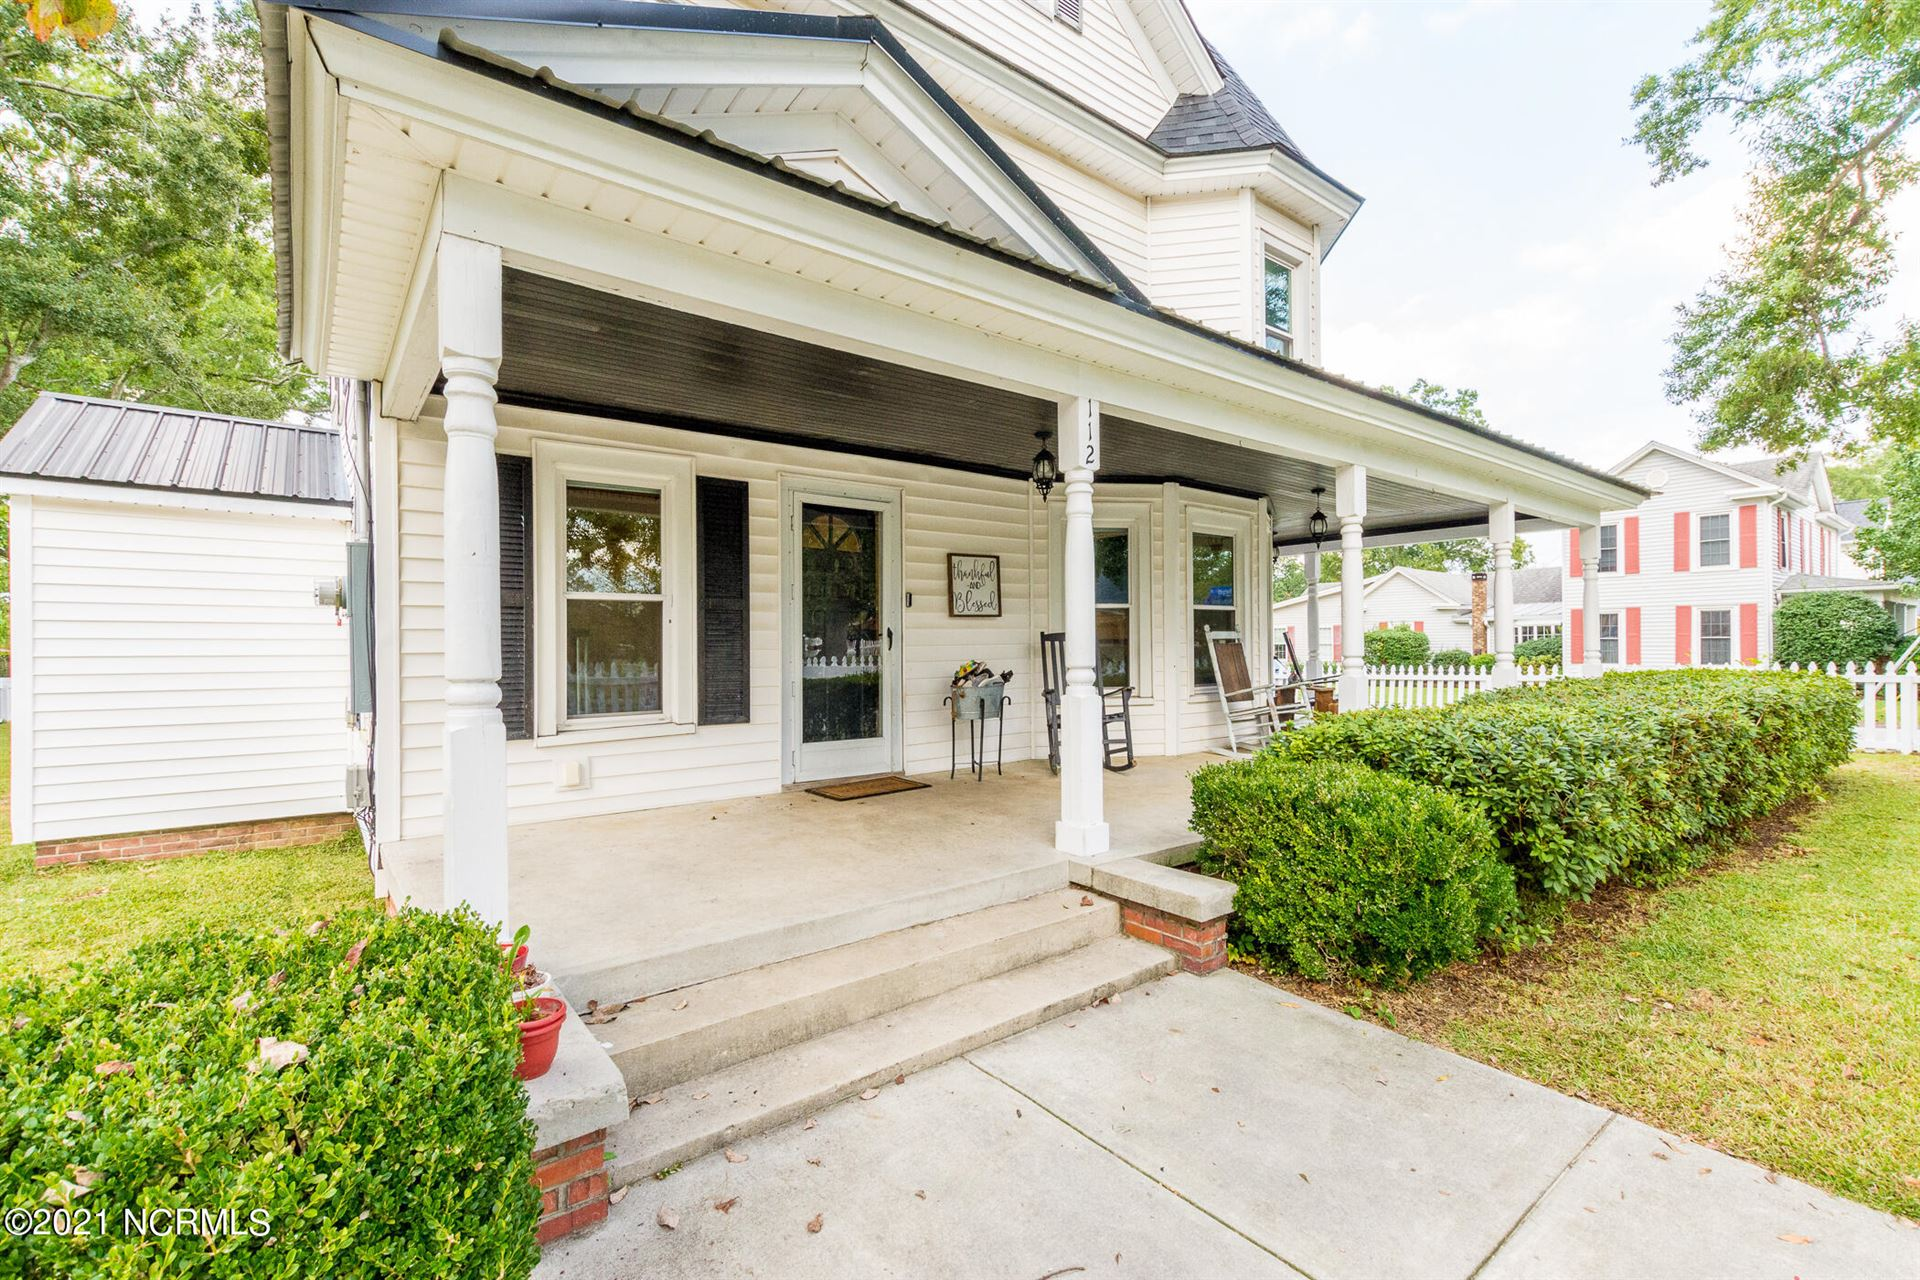 Photo of 112 E Hargett Street, Richlands, NC 28574 (MLS # 100292141)